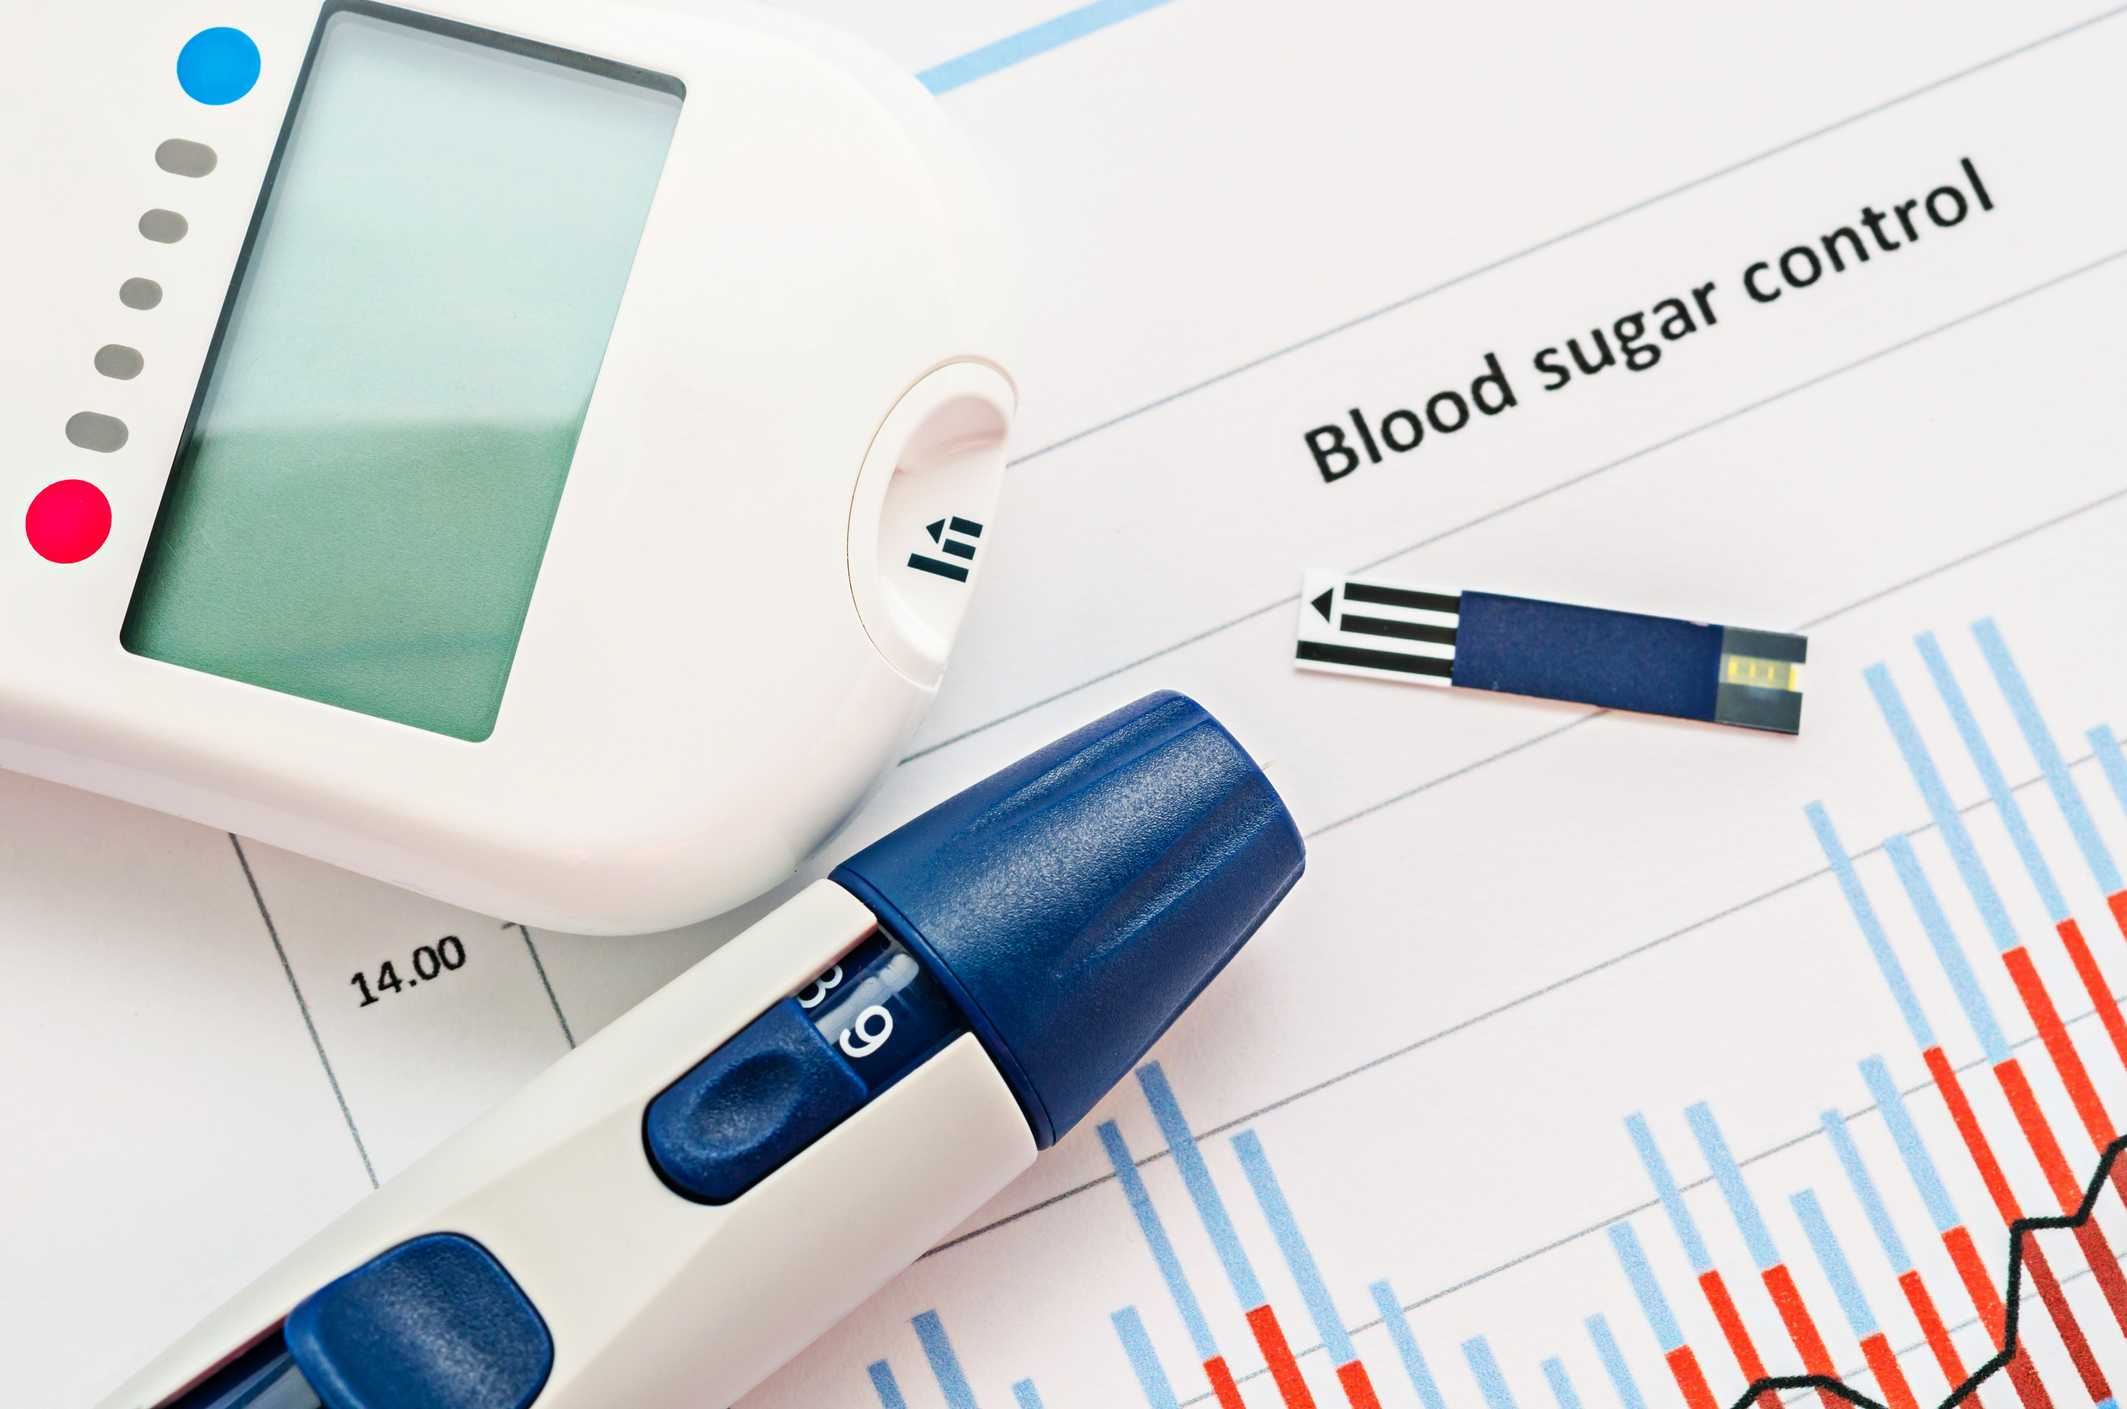 Hypoglycemia - Symptoms, Causes and Treatment